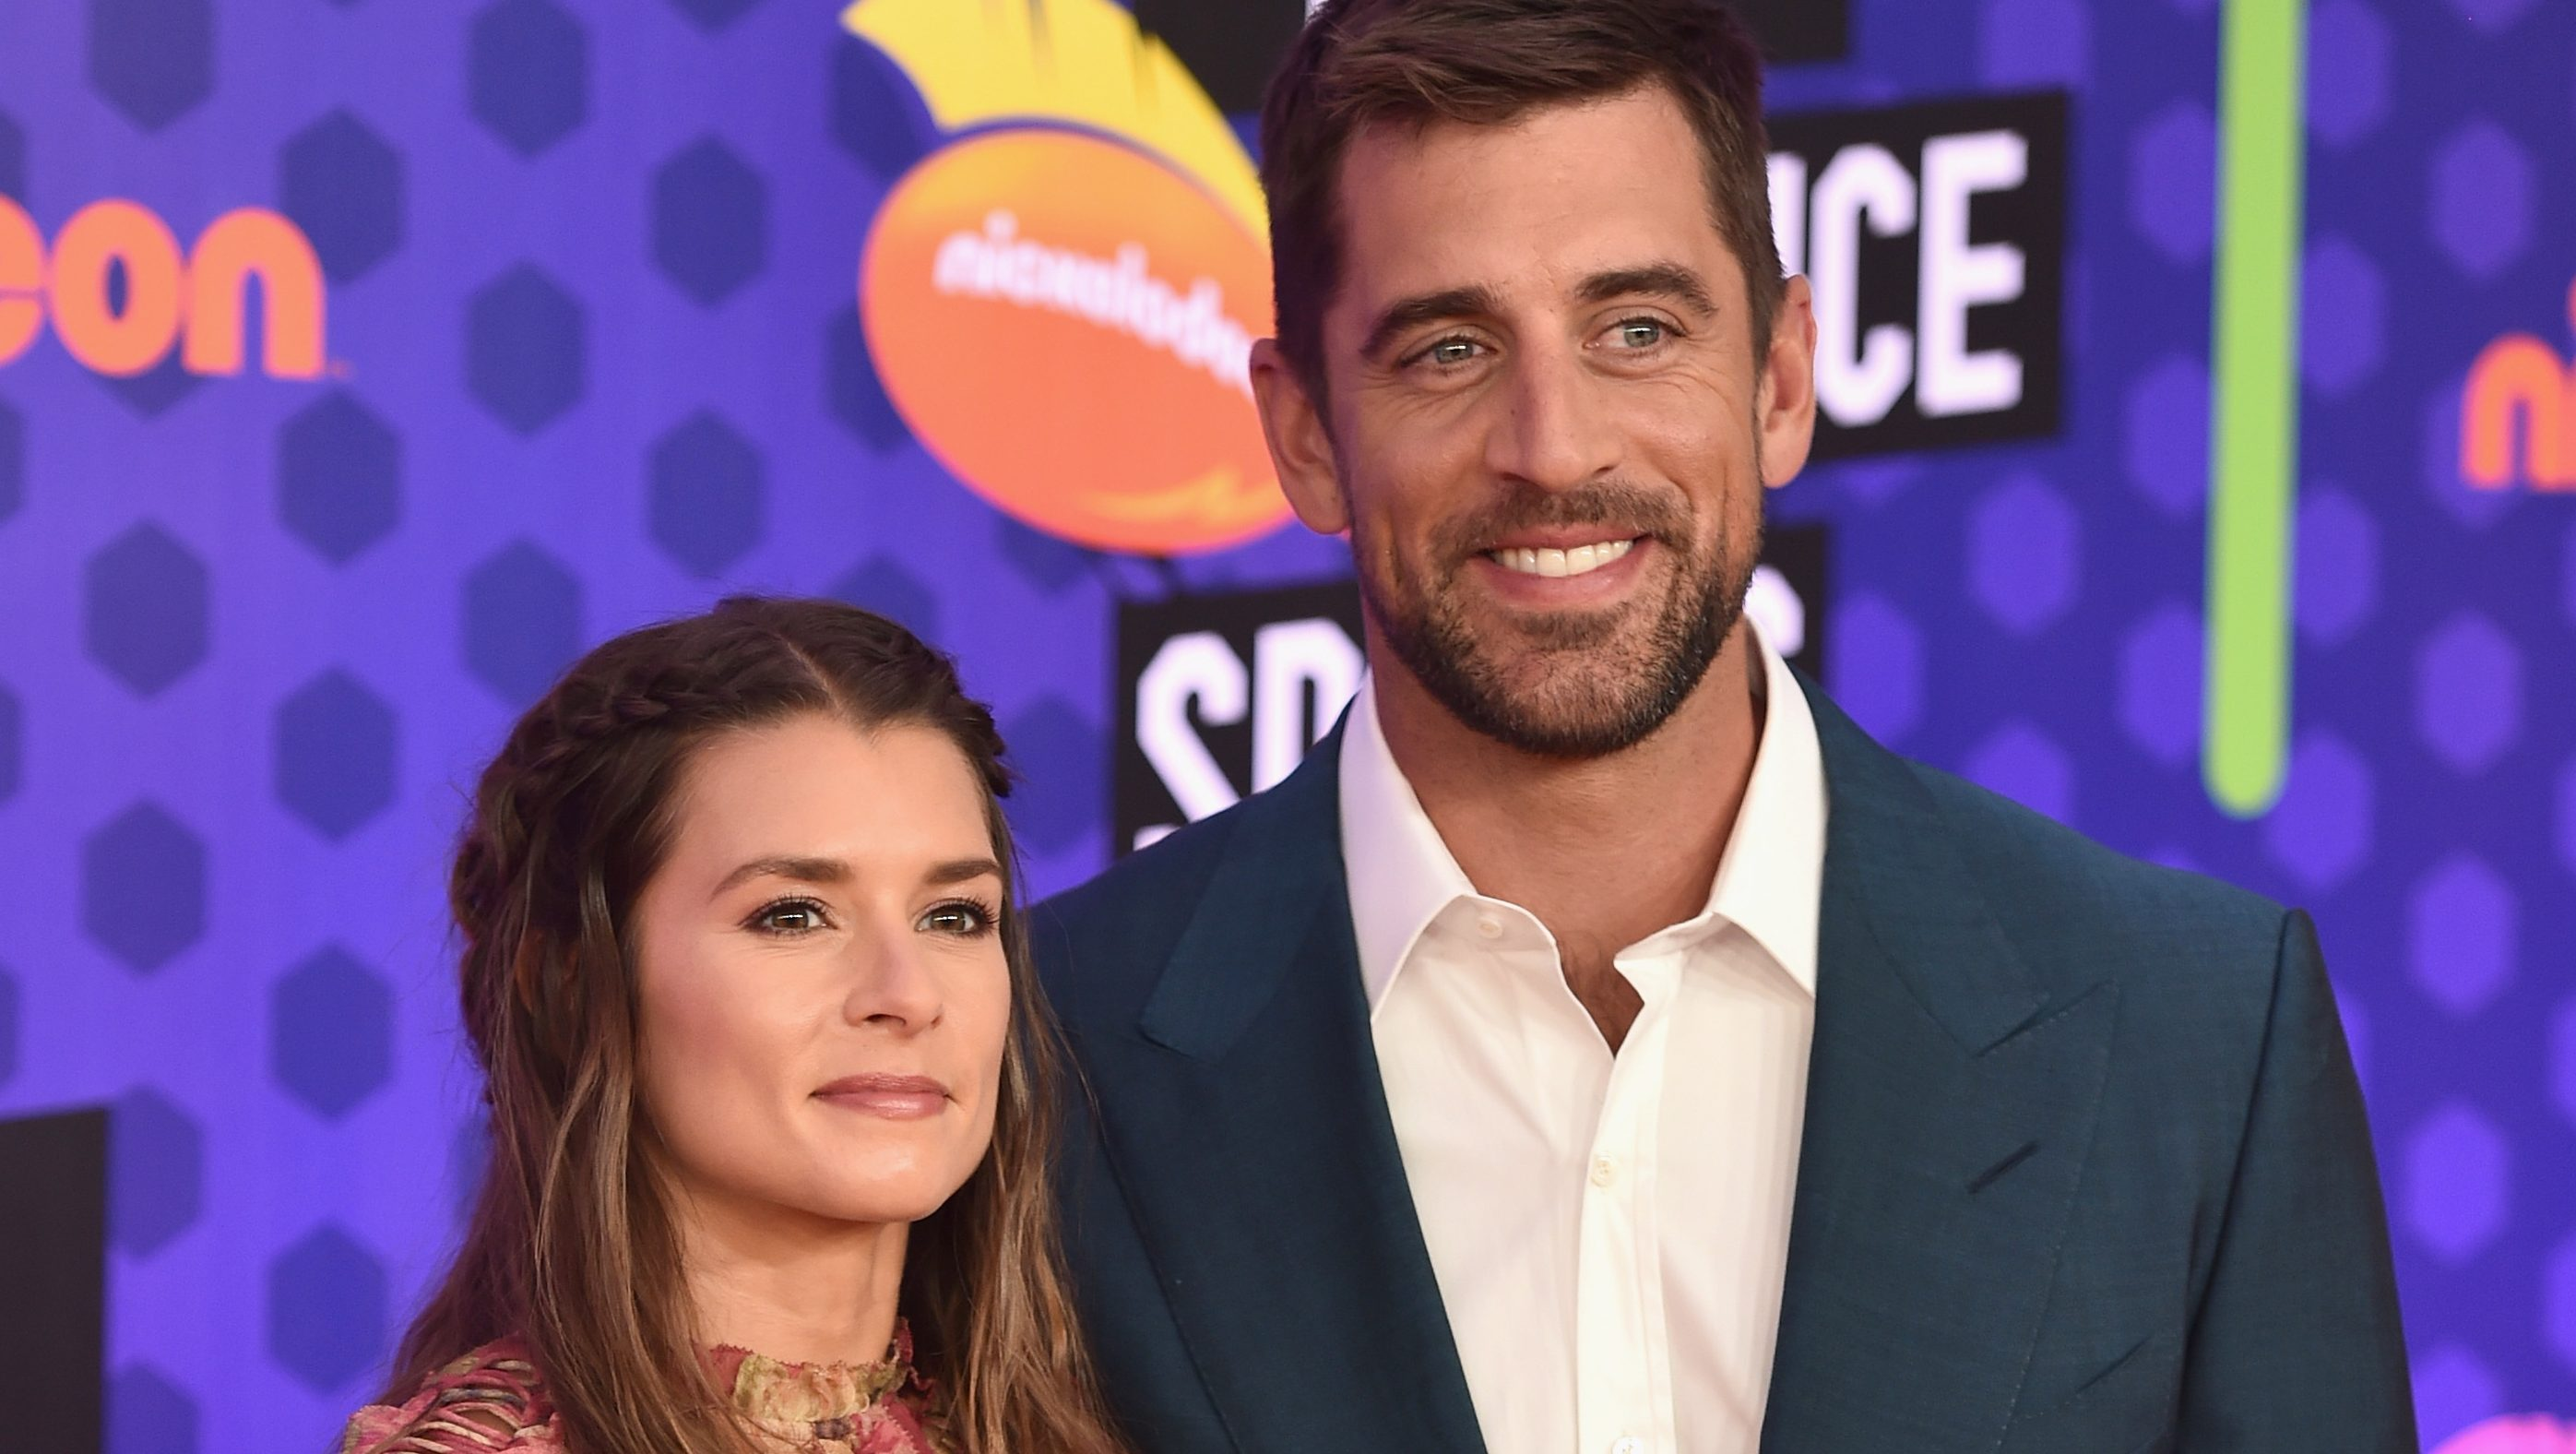 Aaron Rodgers Pressured To Propose To Girlfriend Danica Patrick